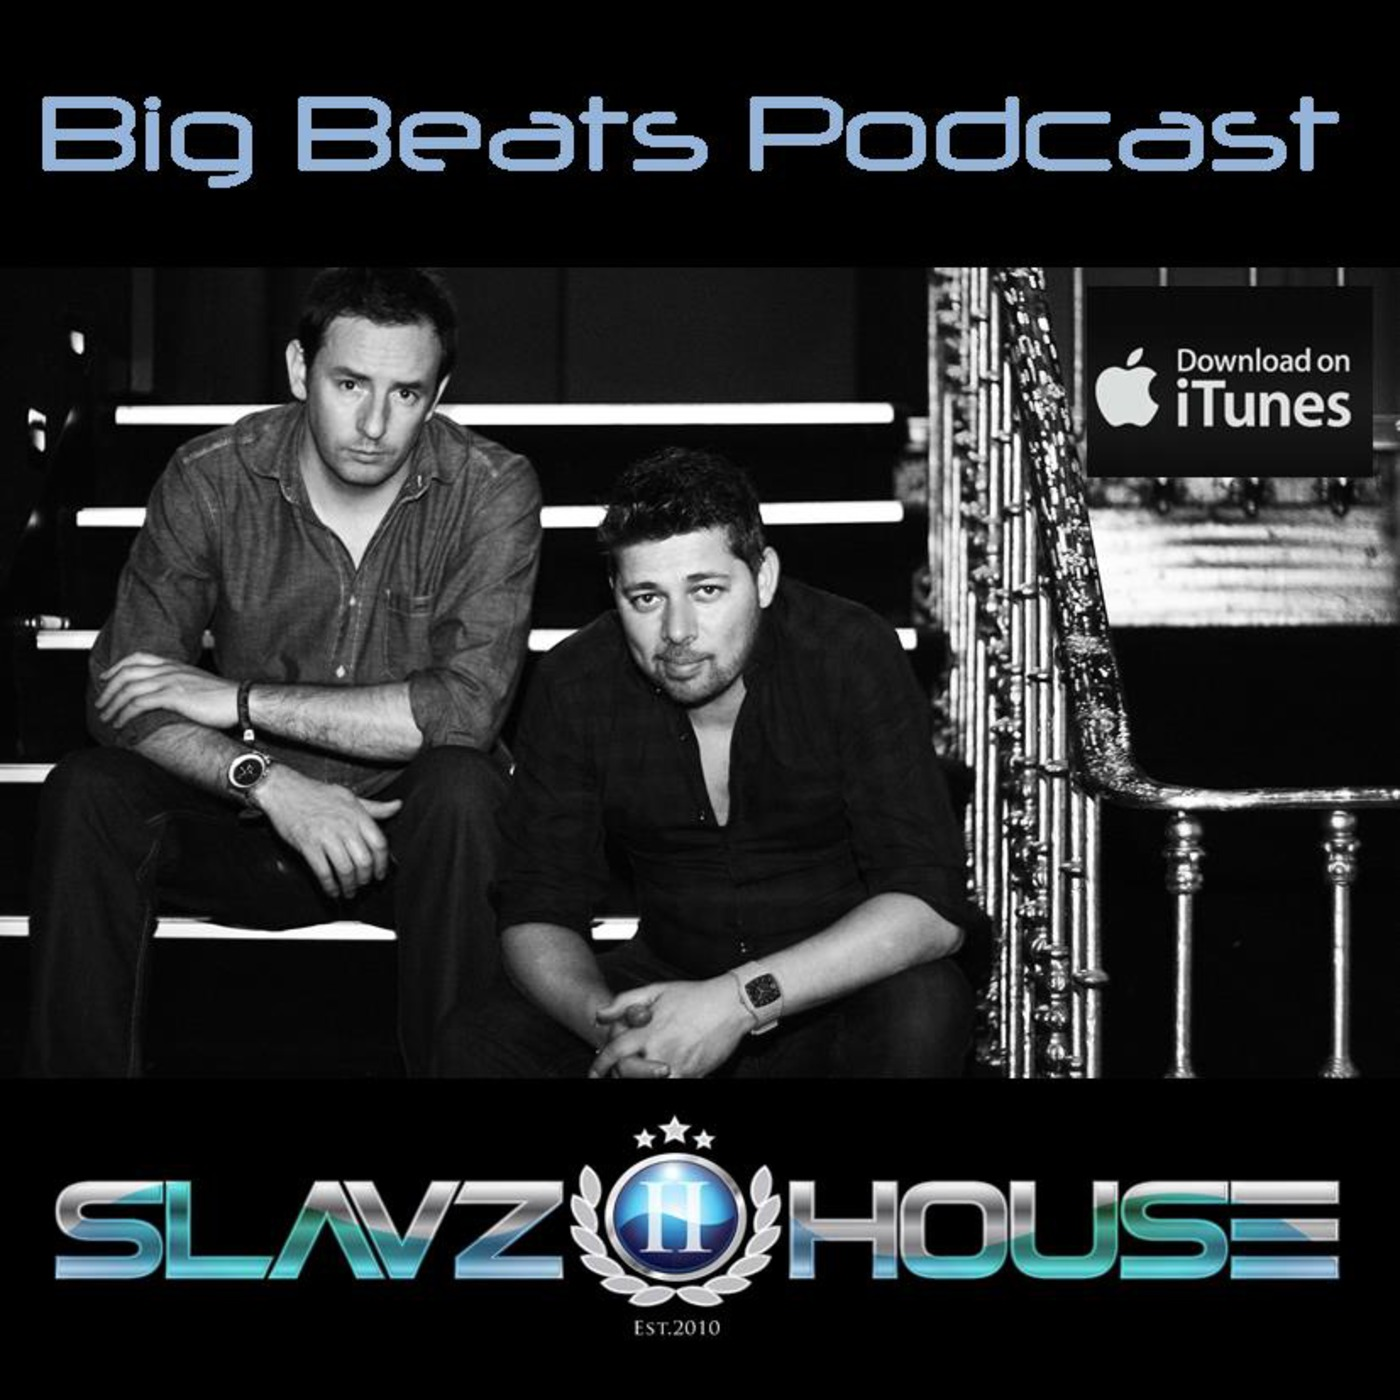 SlavzIIhouse Big Beats Podcast